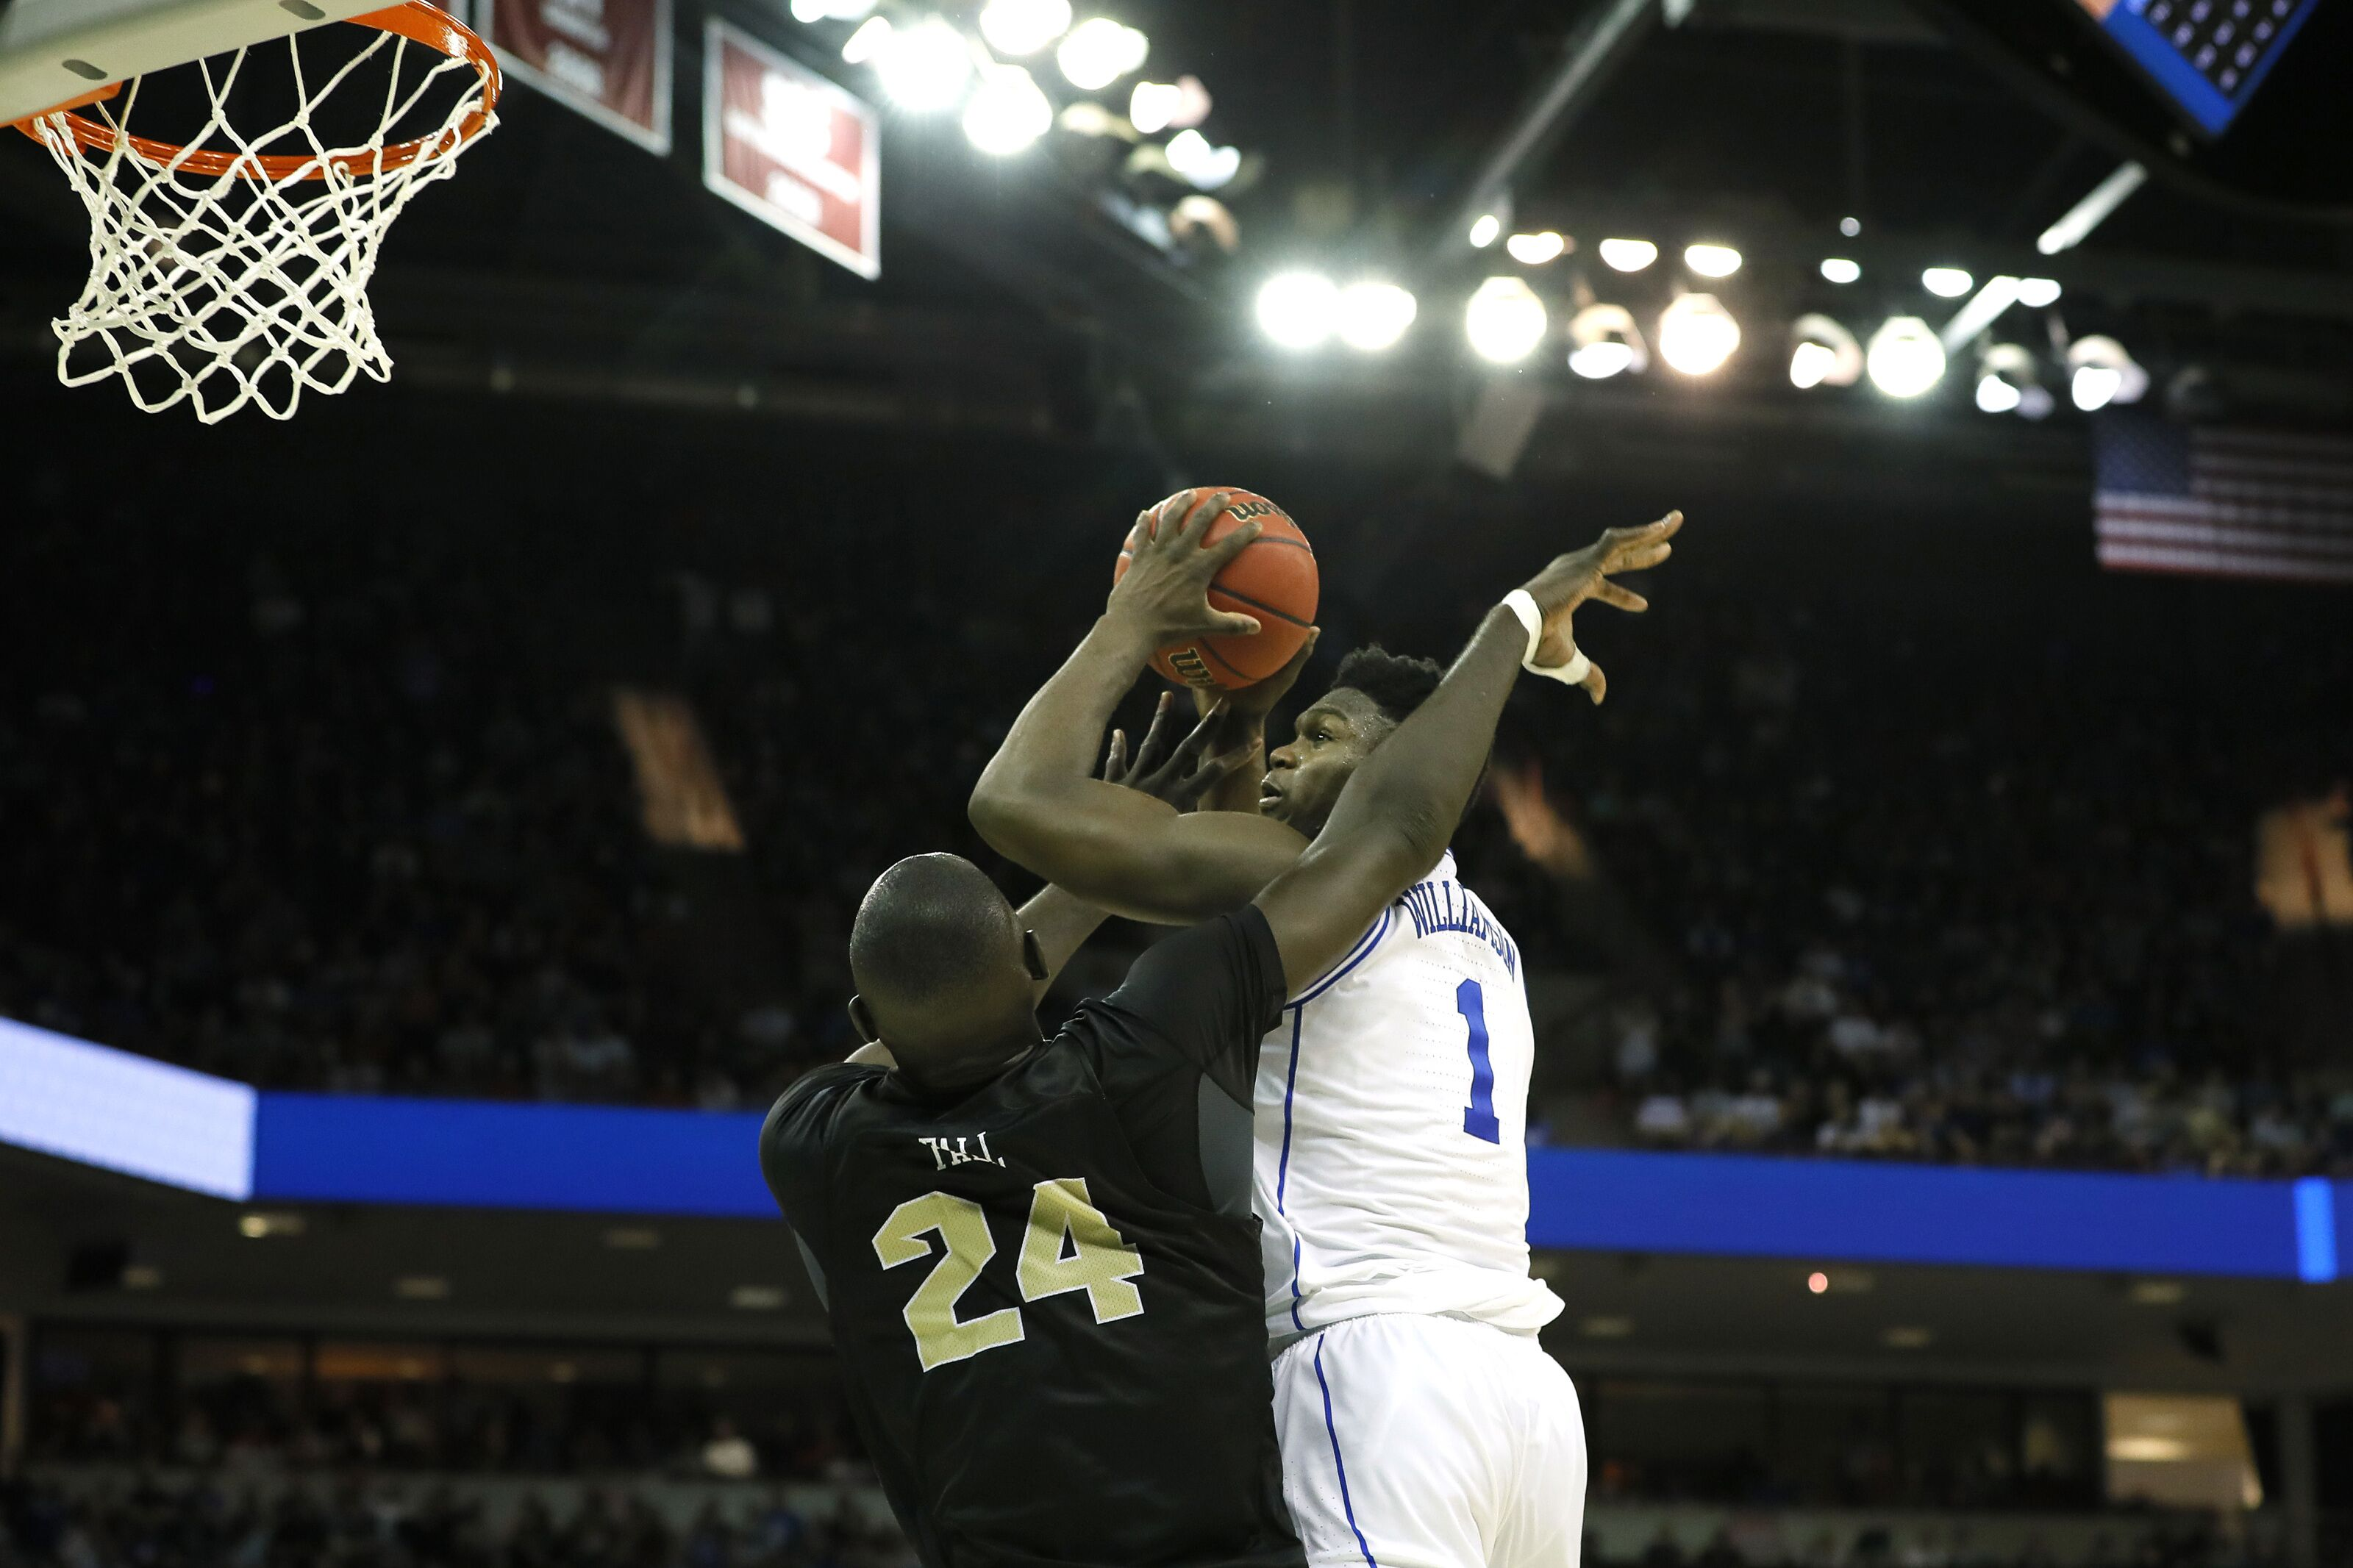 Zion Williamson vs. Tacko Fall and 9 other things from last weekend